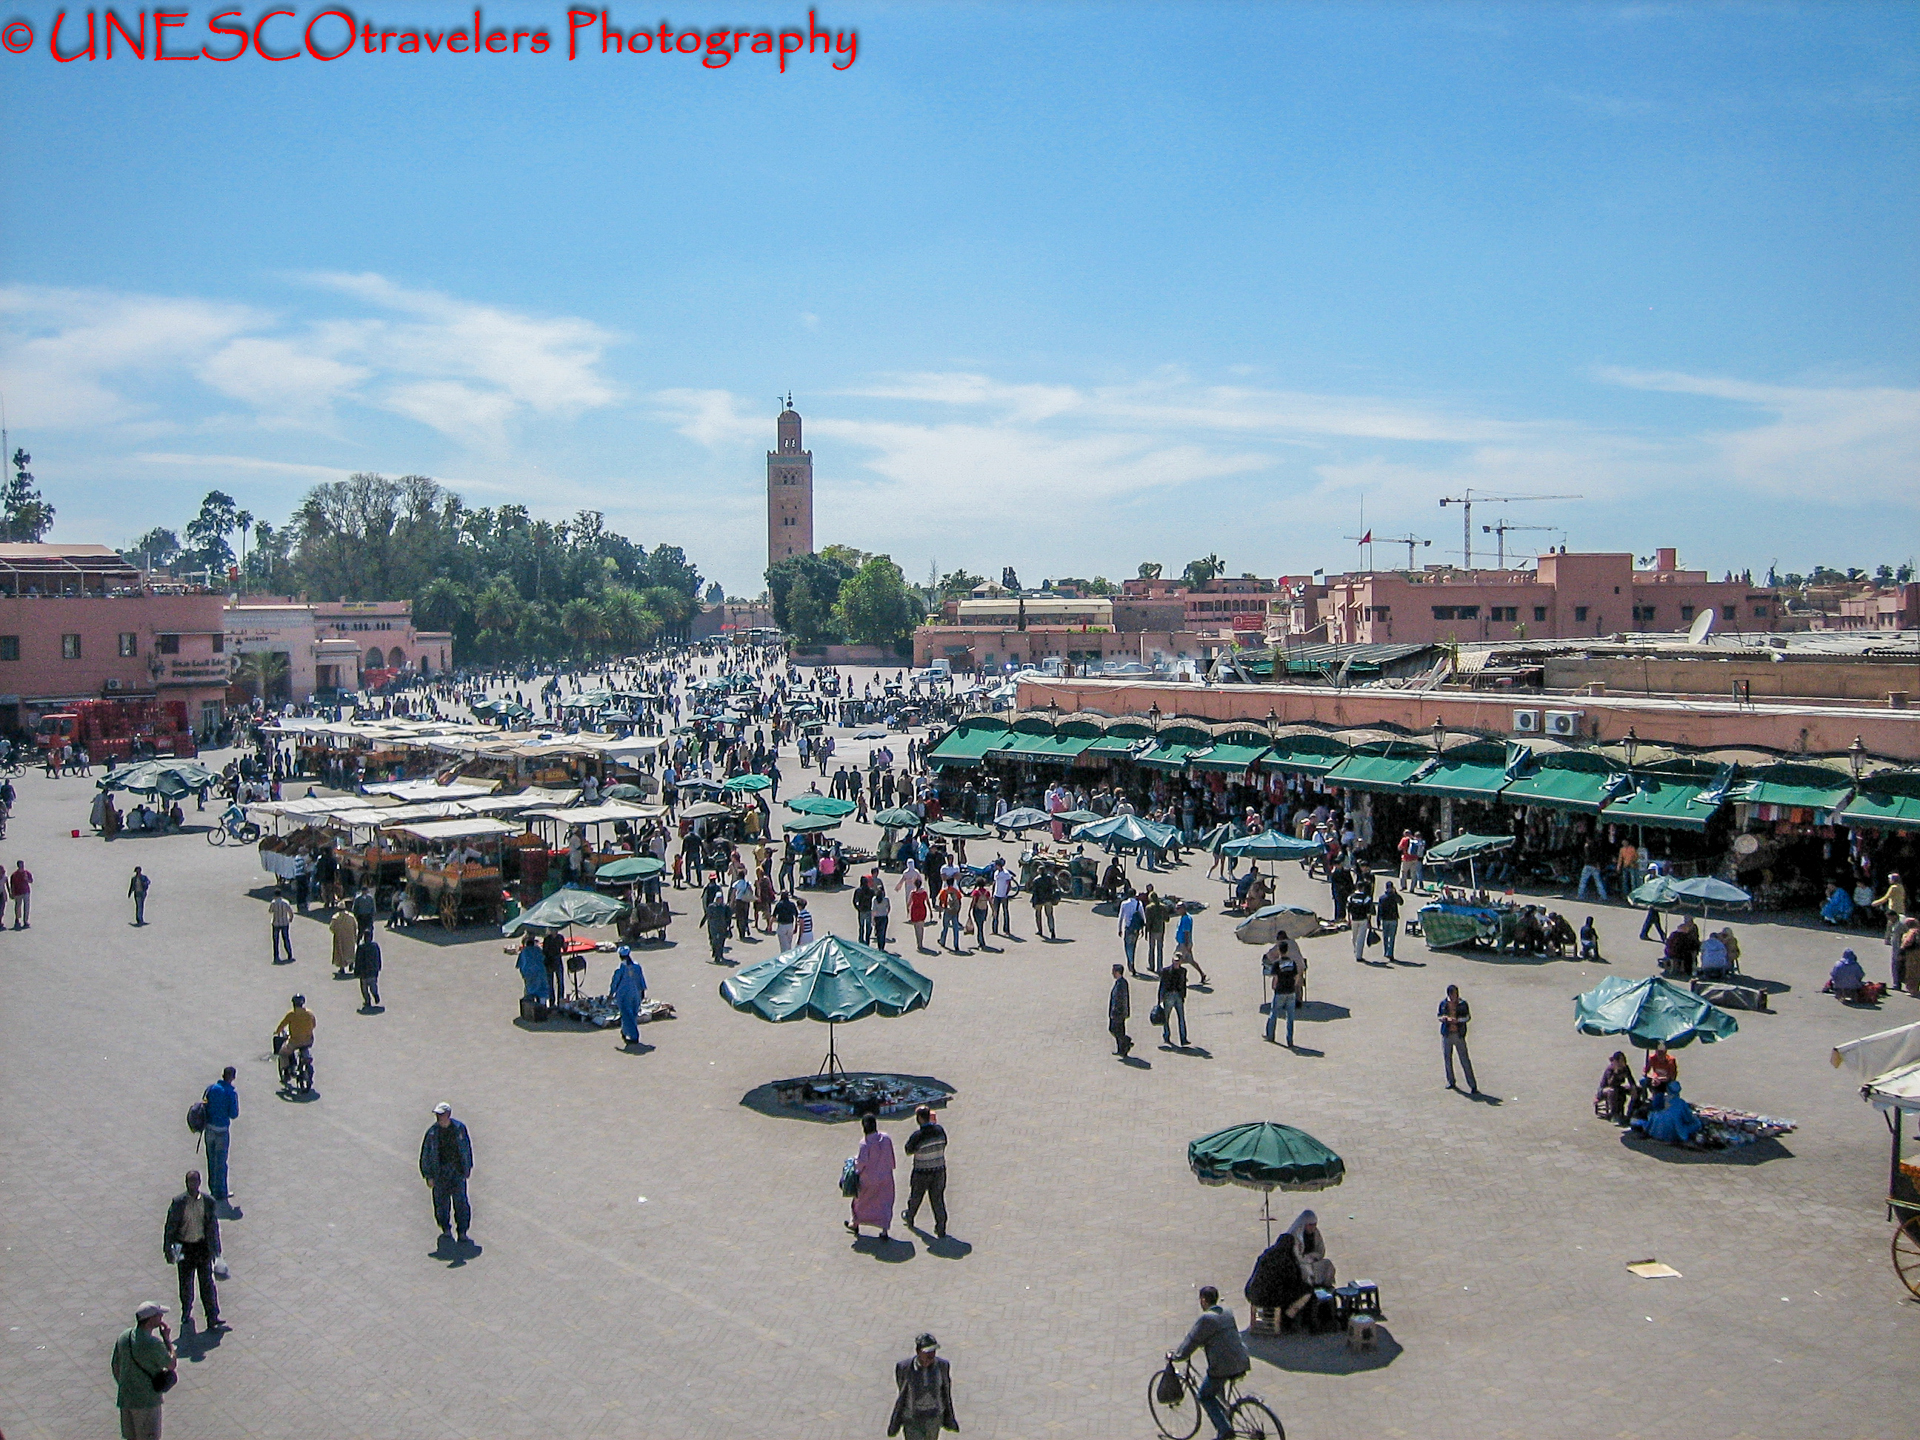 The Great Square of Jemaa el-Fna Cultural space of Jemaa el-Fna Square - Morocco By UNESCOtravelers